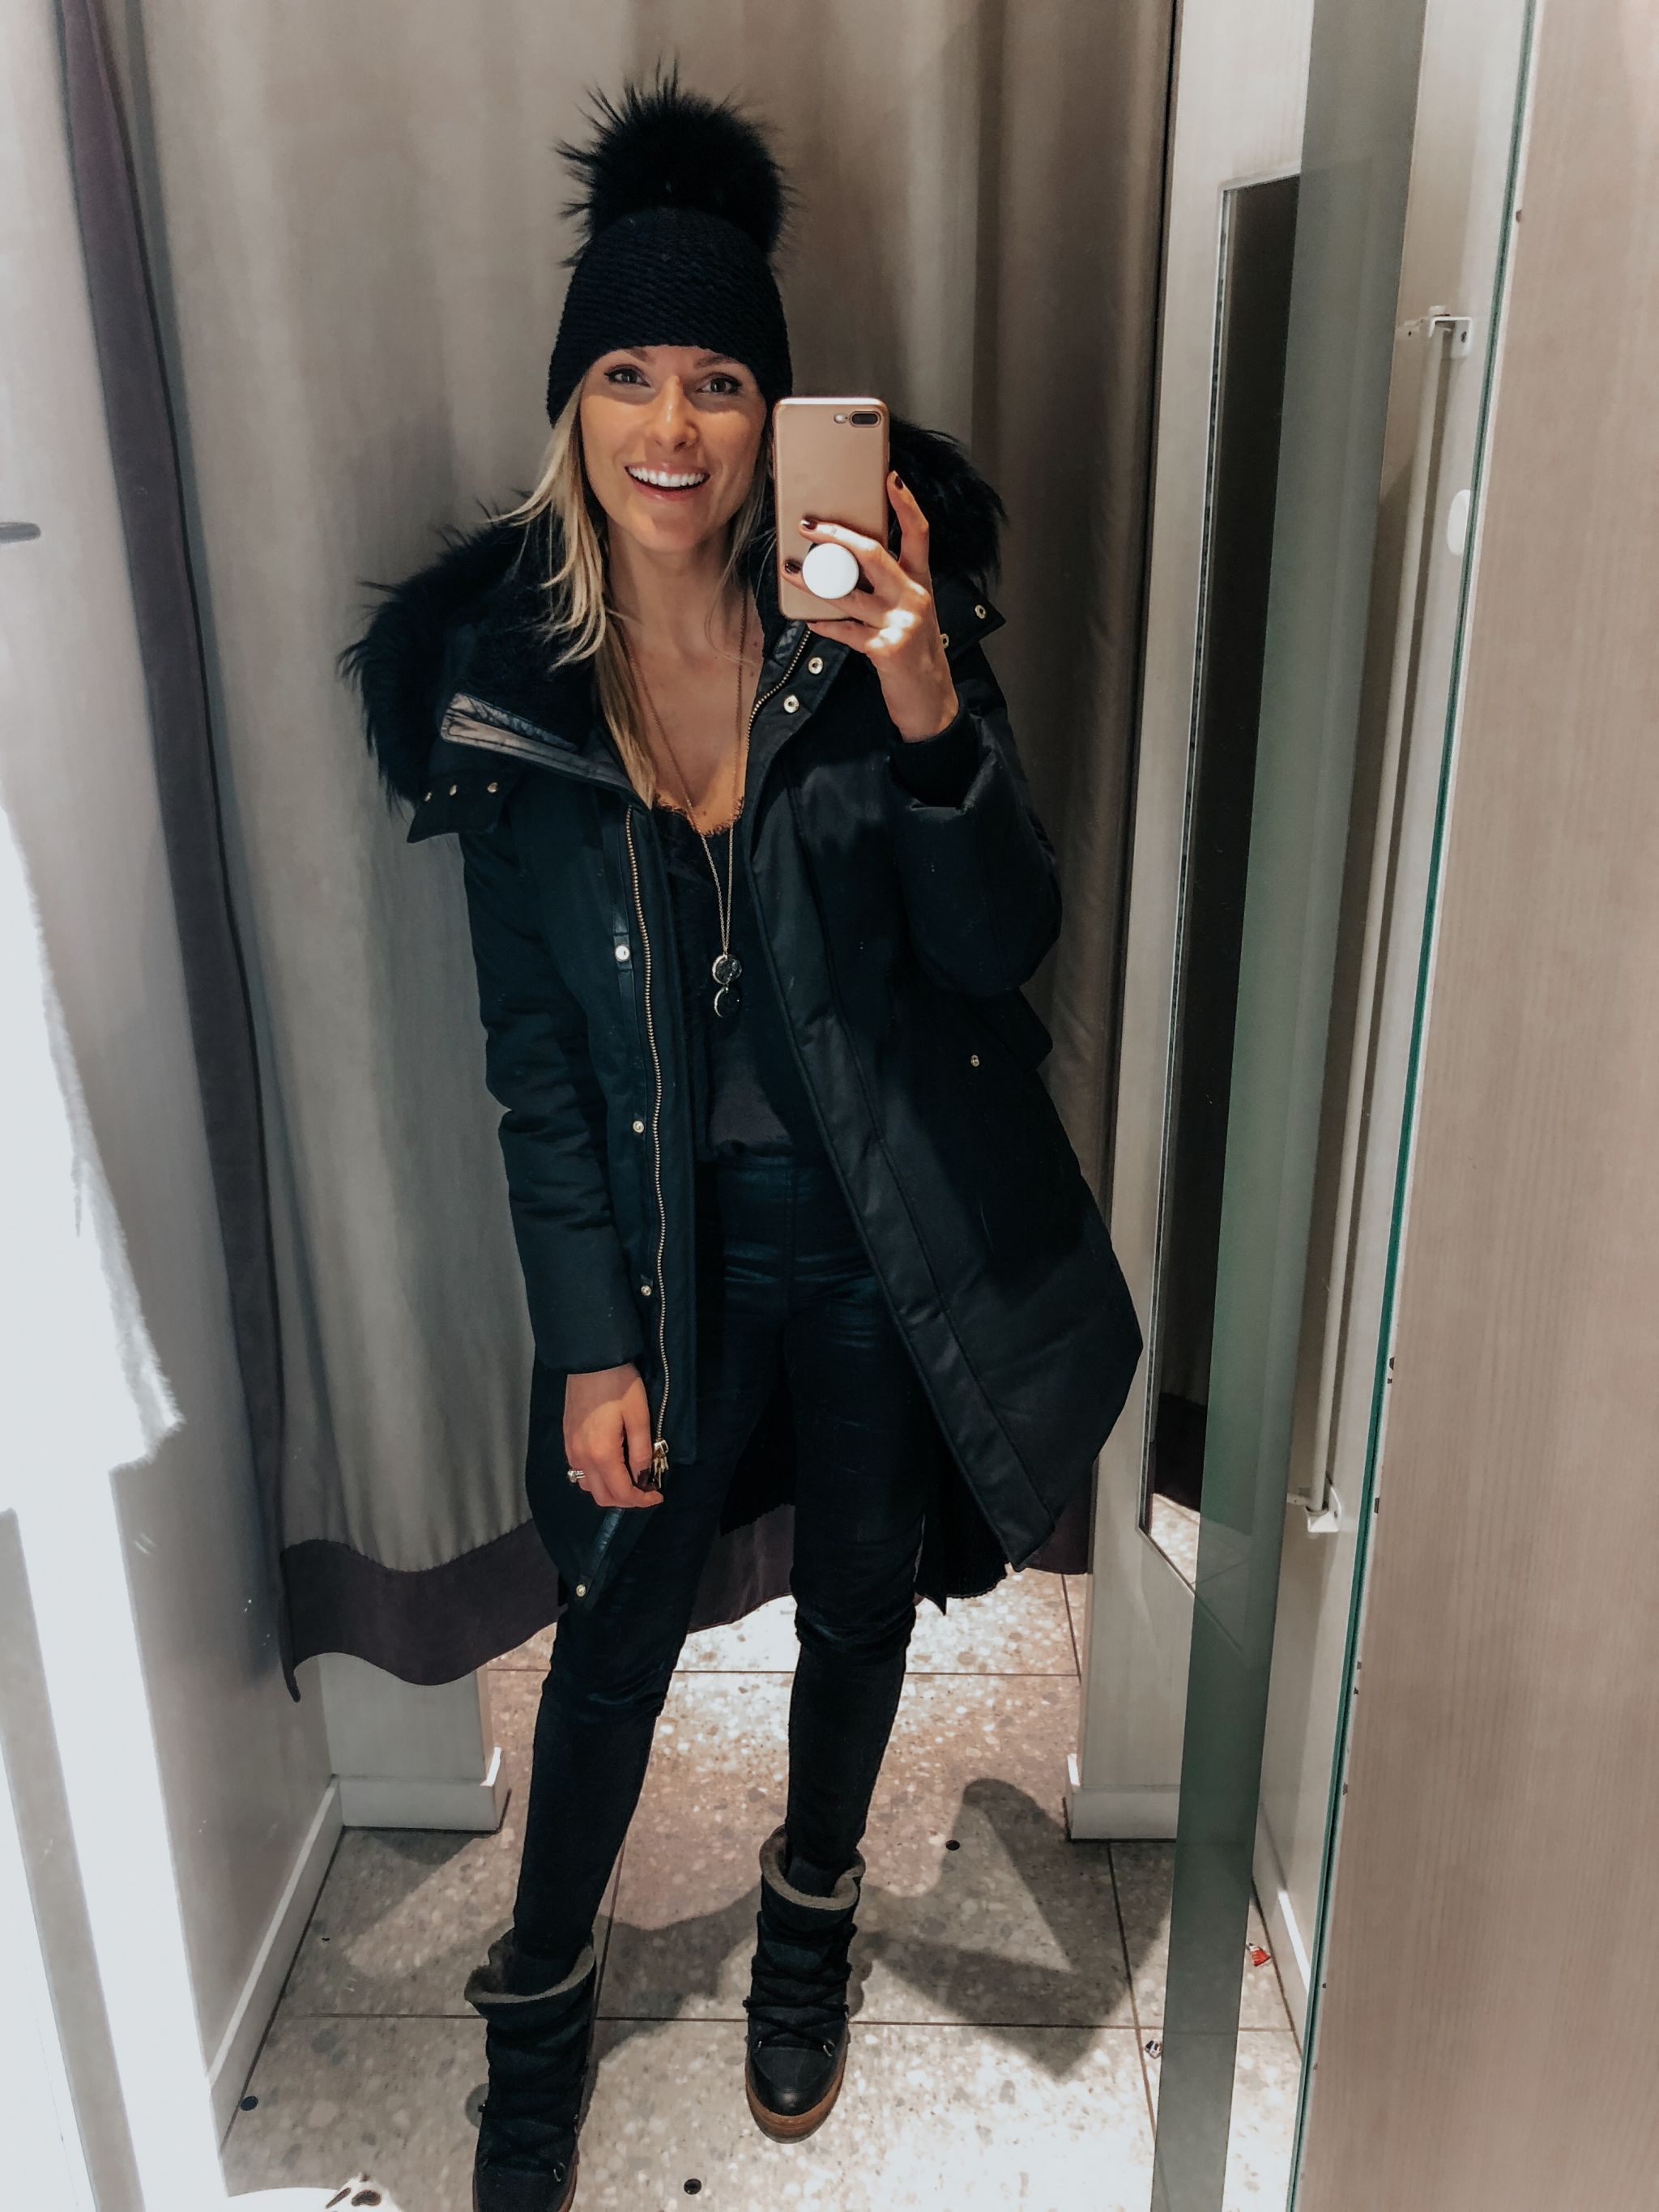 girl in fitting room, selfie, girl wearing winter jacket and hat